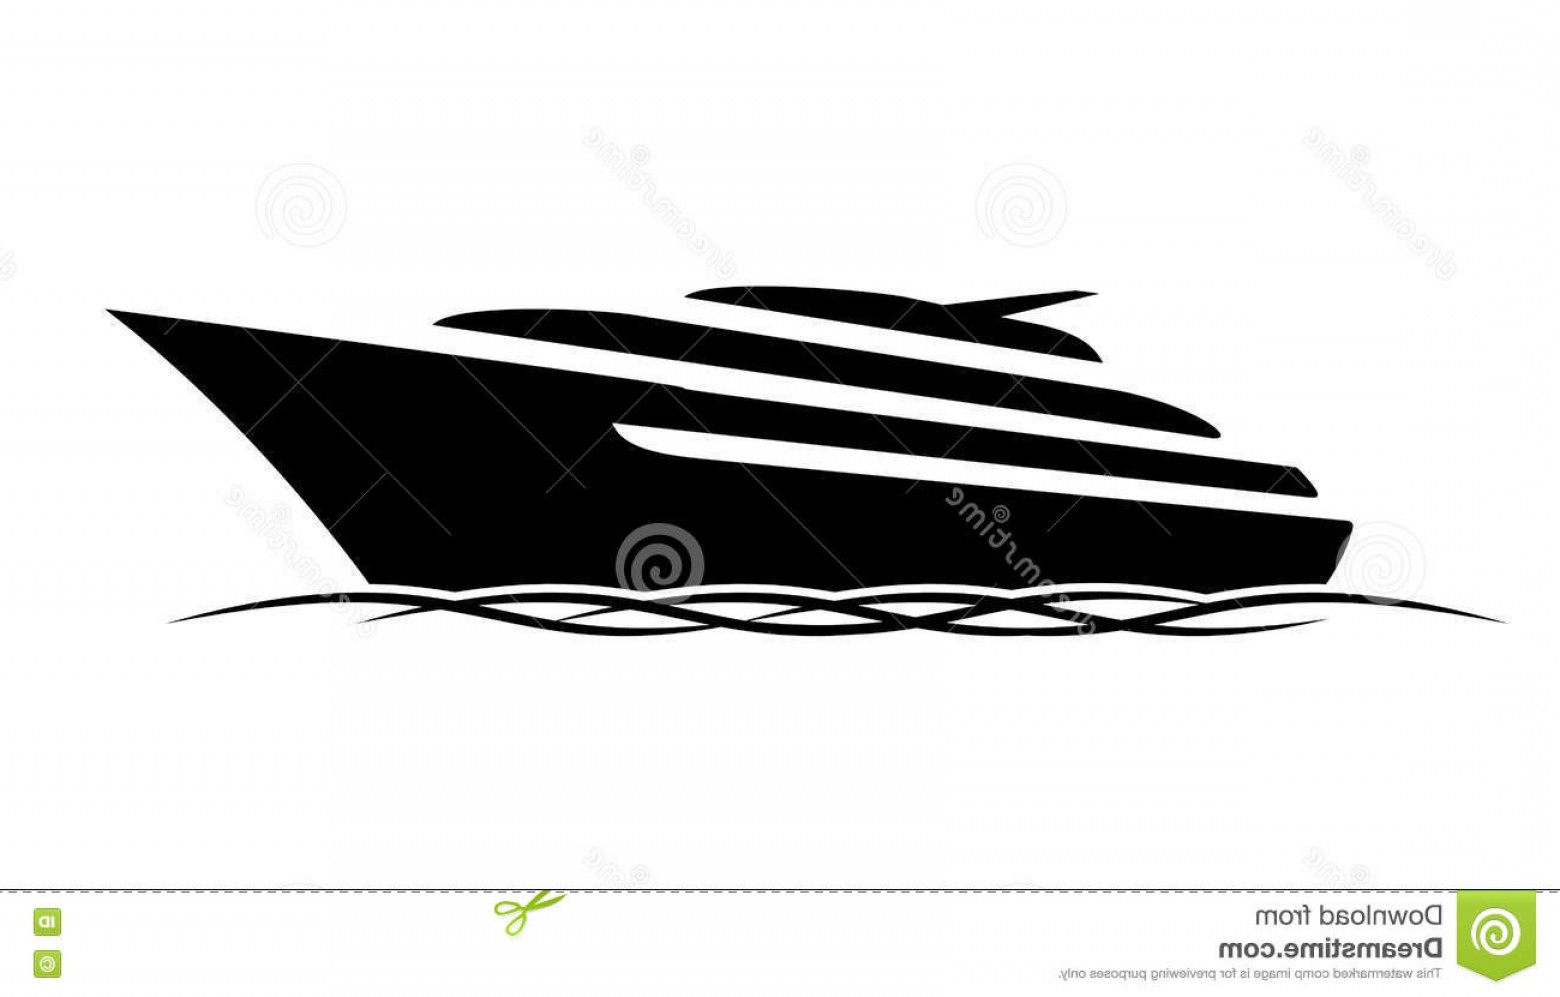 Waves With Cruise Ship Silhouette Vector: Stock Illustration Black Silhouette Sports Expensive Motor Deck Yacht Floating Waves Sea Ocean Lot Vector Icon Image